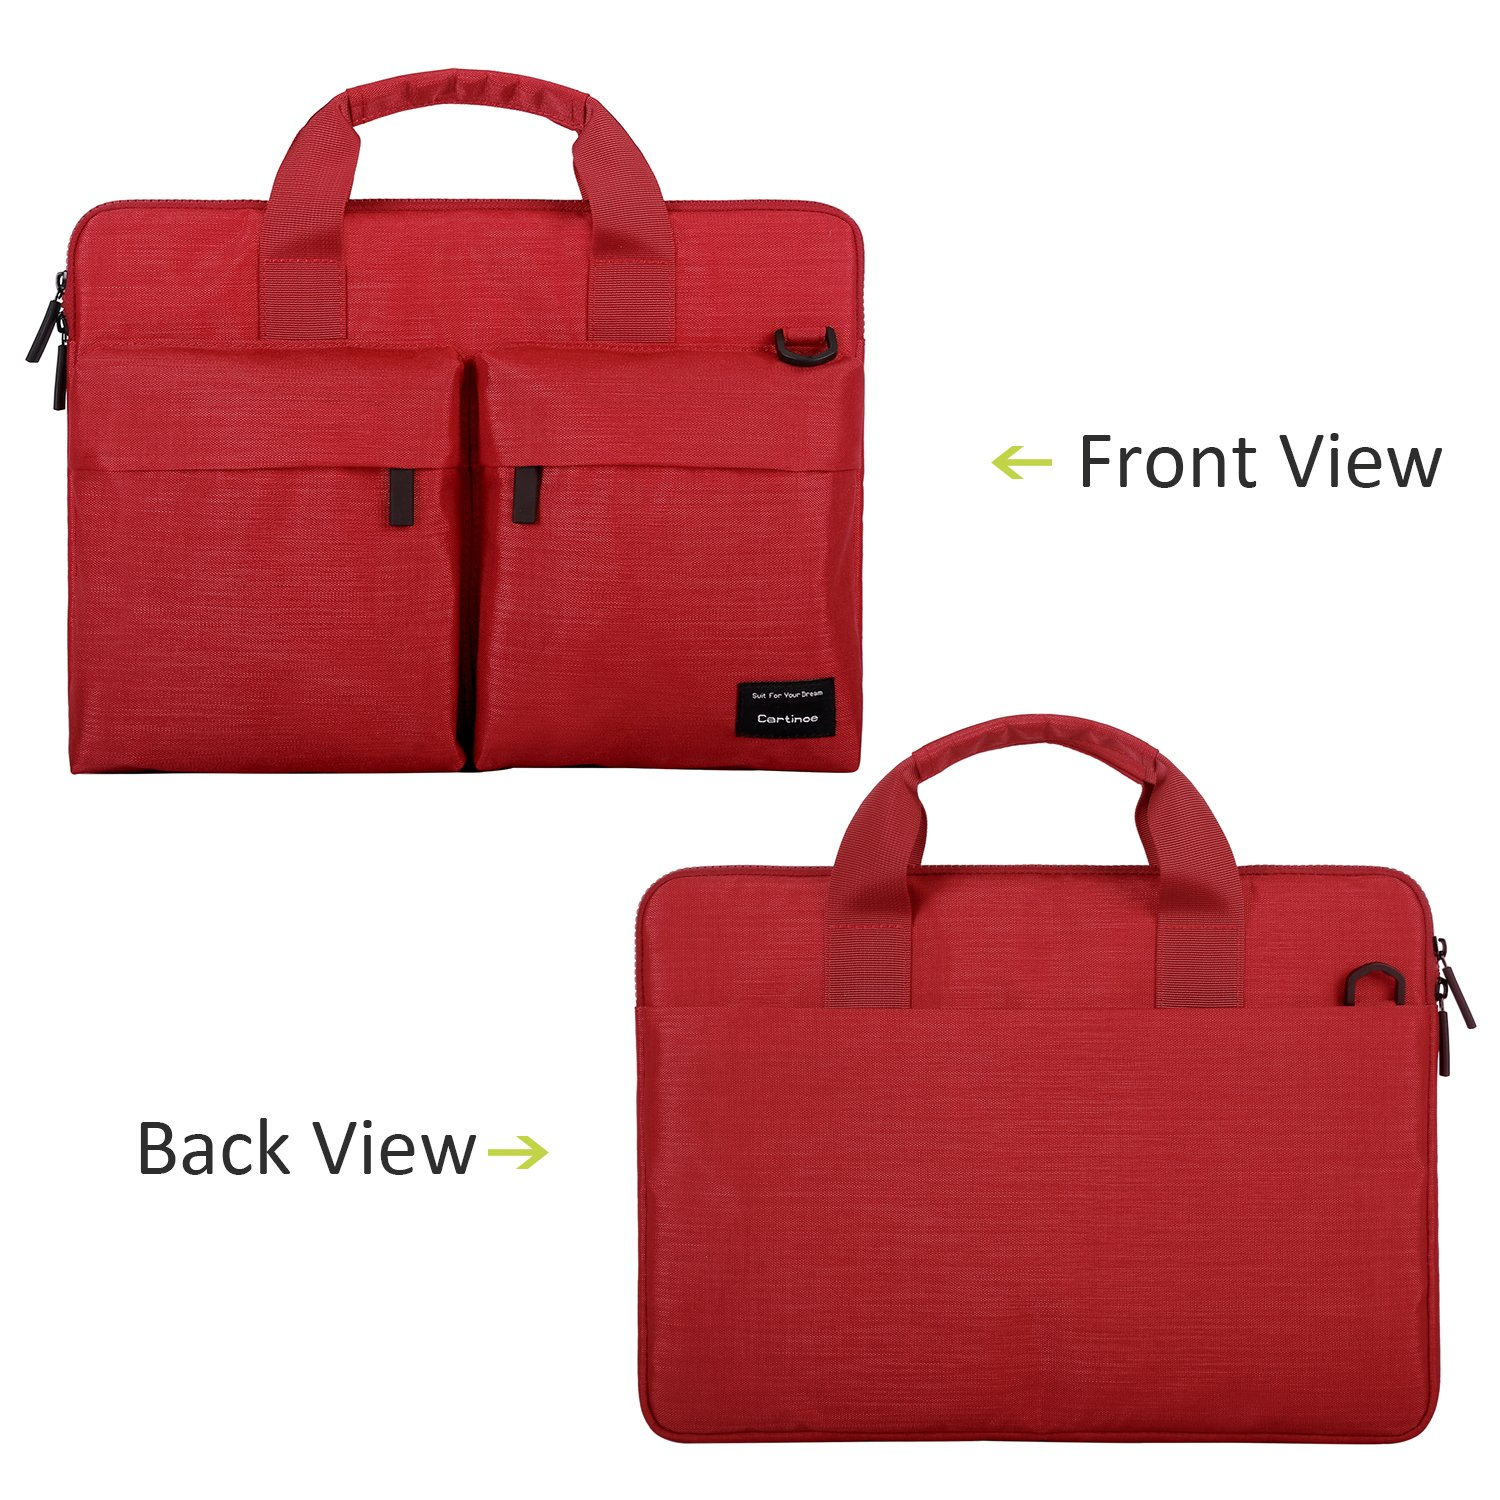 Cartinoe City 14-15 inch Laptop Briefcase Messenger Bag, Professional Business Water Resistant Shoulder bag for Apple 15.4 Inch MacBook Touchbar 15, Lenovo Dell ASUS HP Acer Chromebook 14, Red by Youpeck (Image #2)